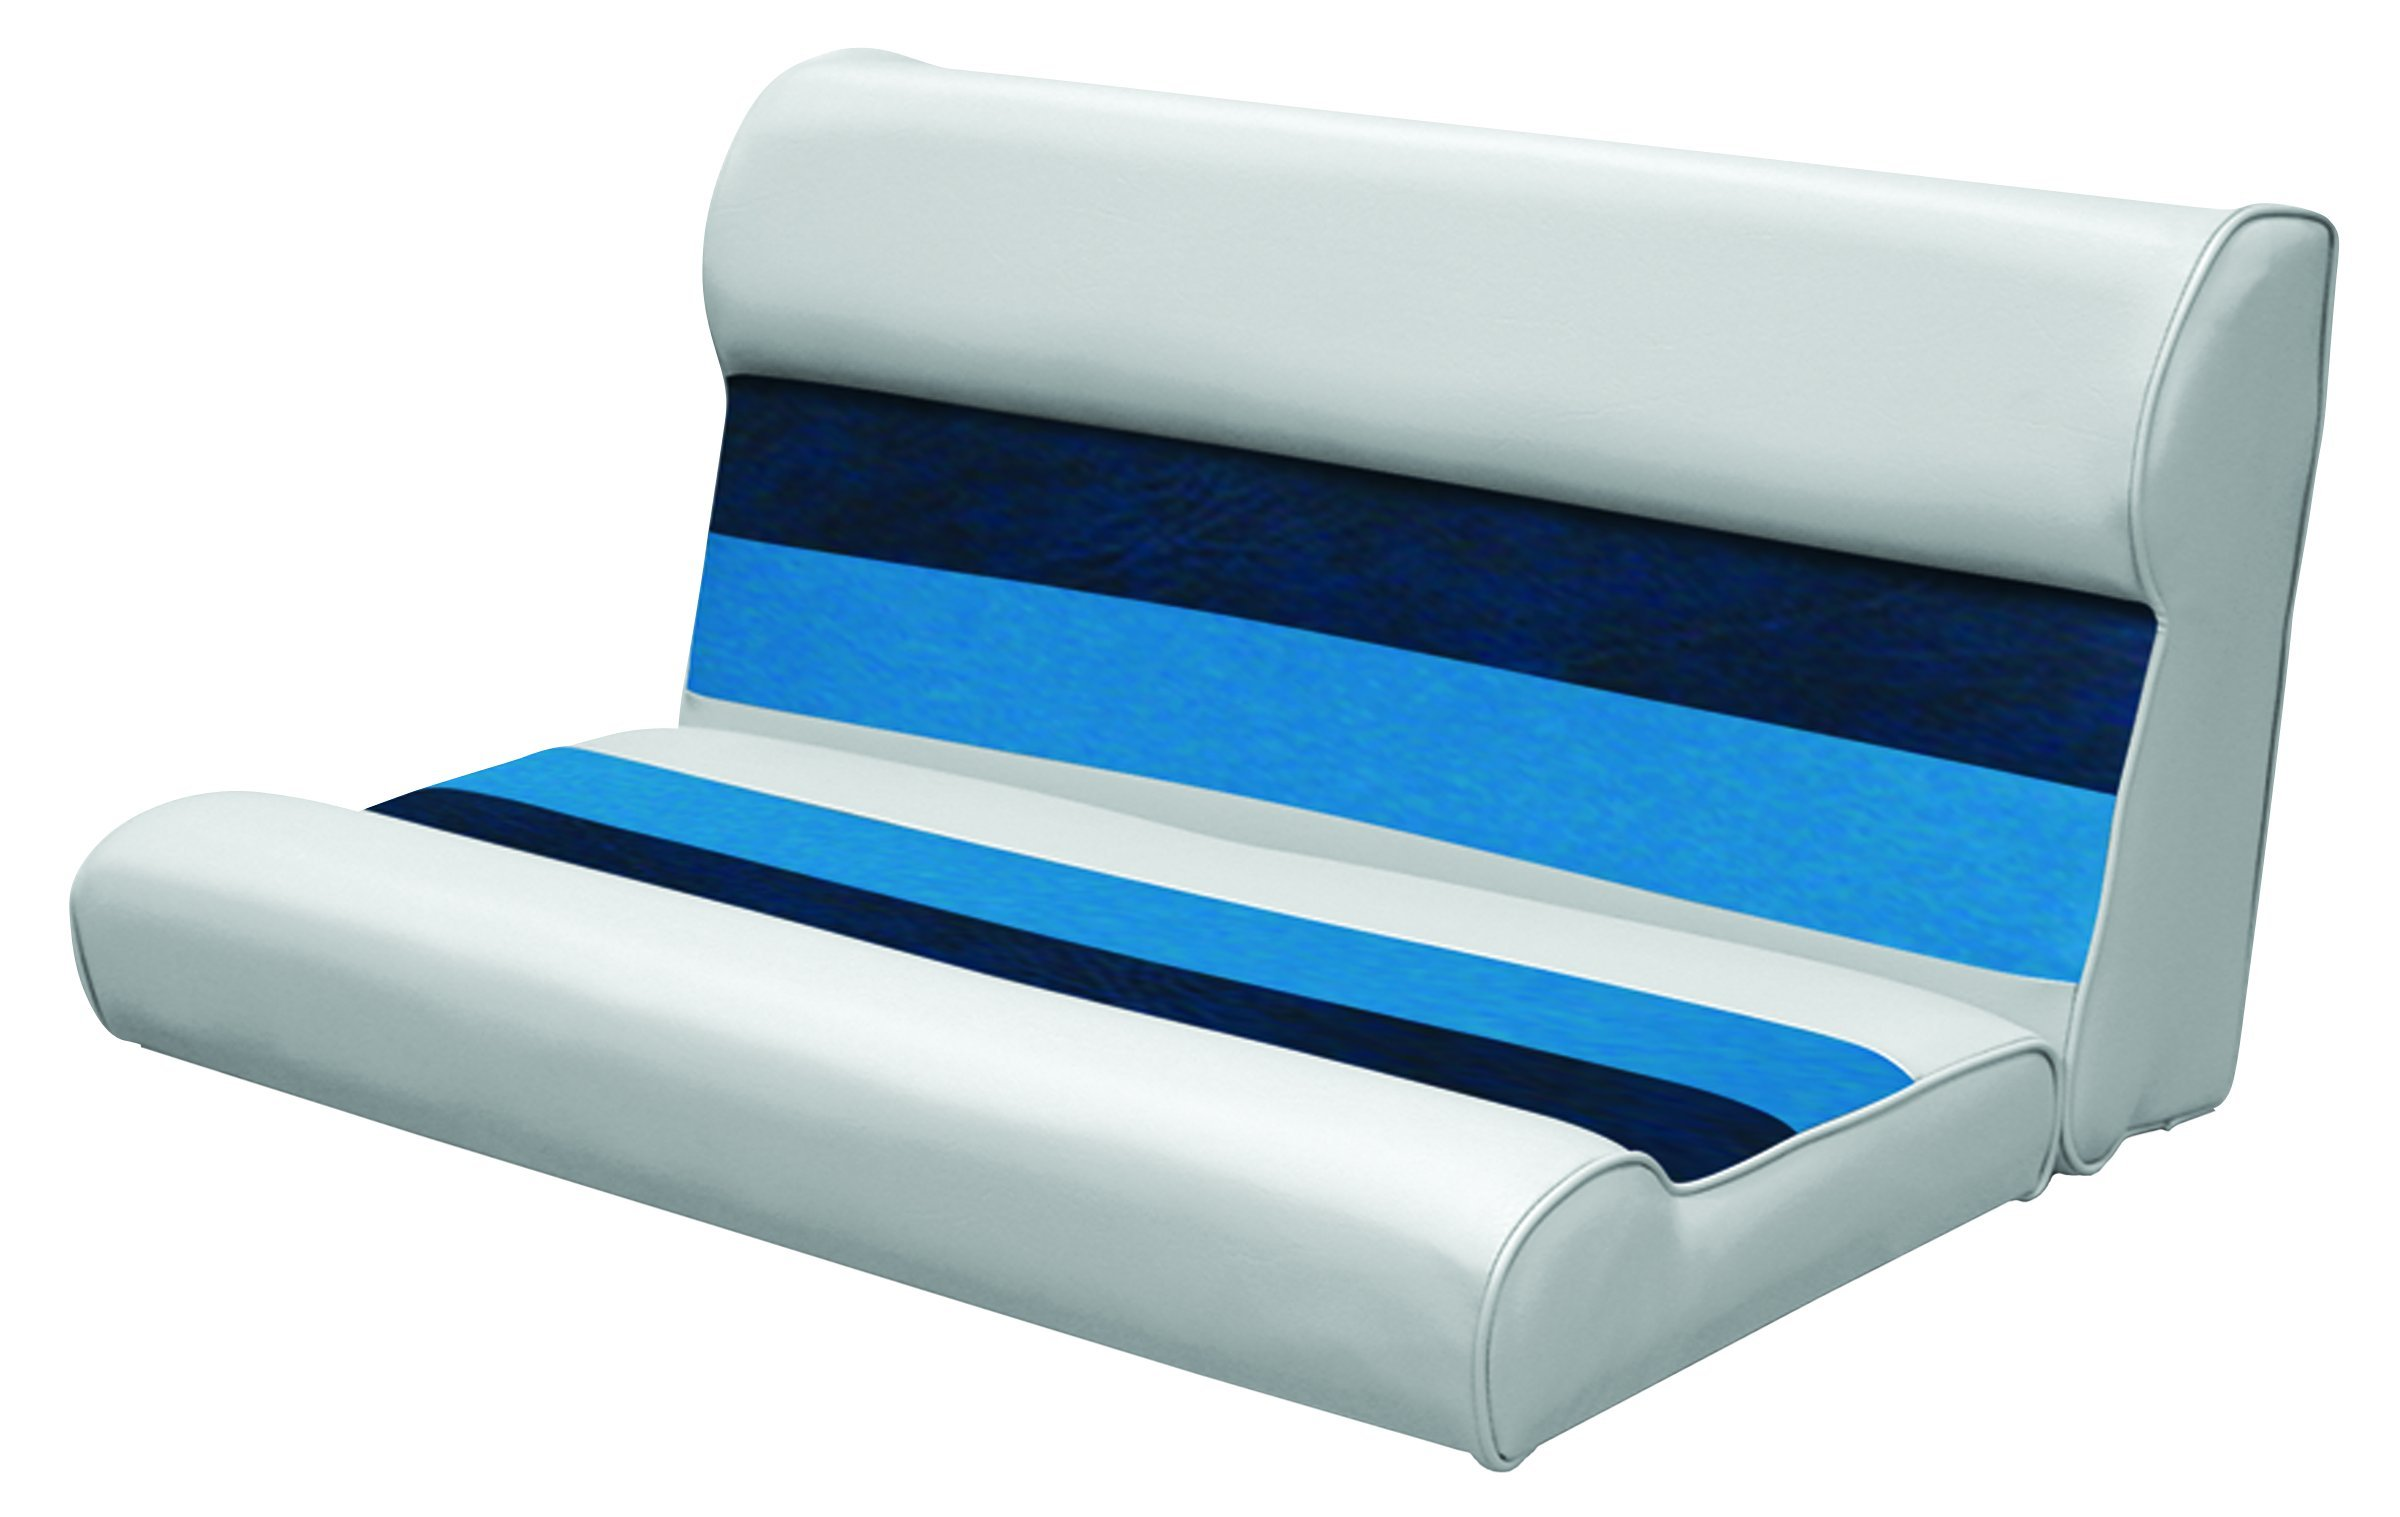 Wise 36-Inch Pontoon Bench Seat Cushion (Base Required to Complete), Gray/Navy/Blue by Wise